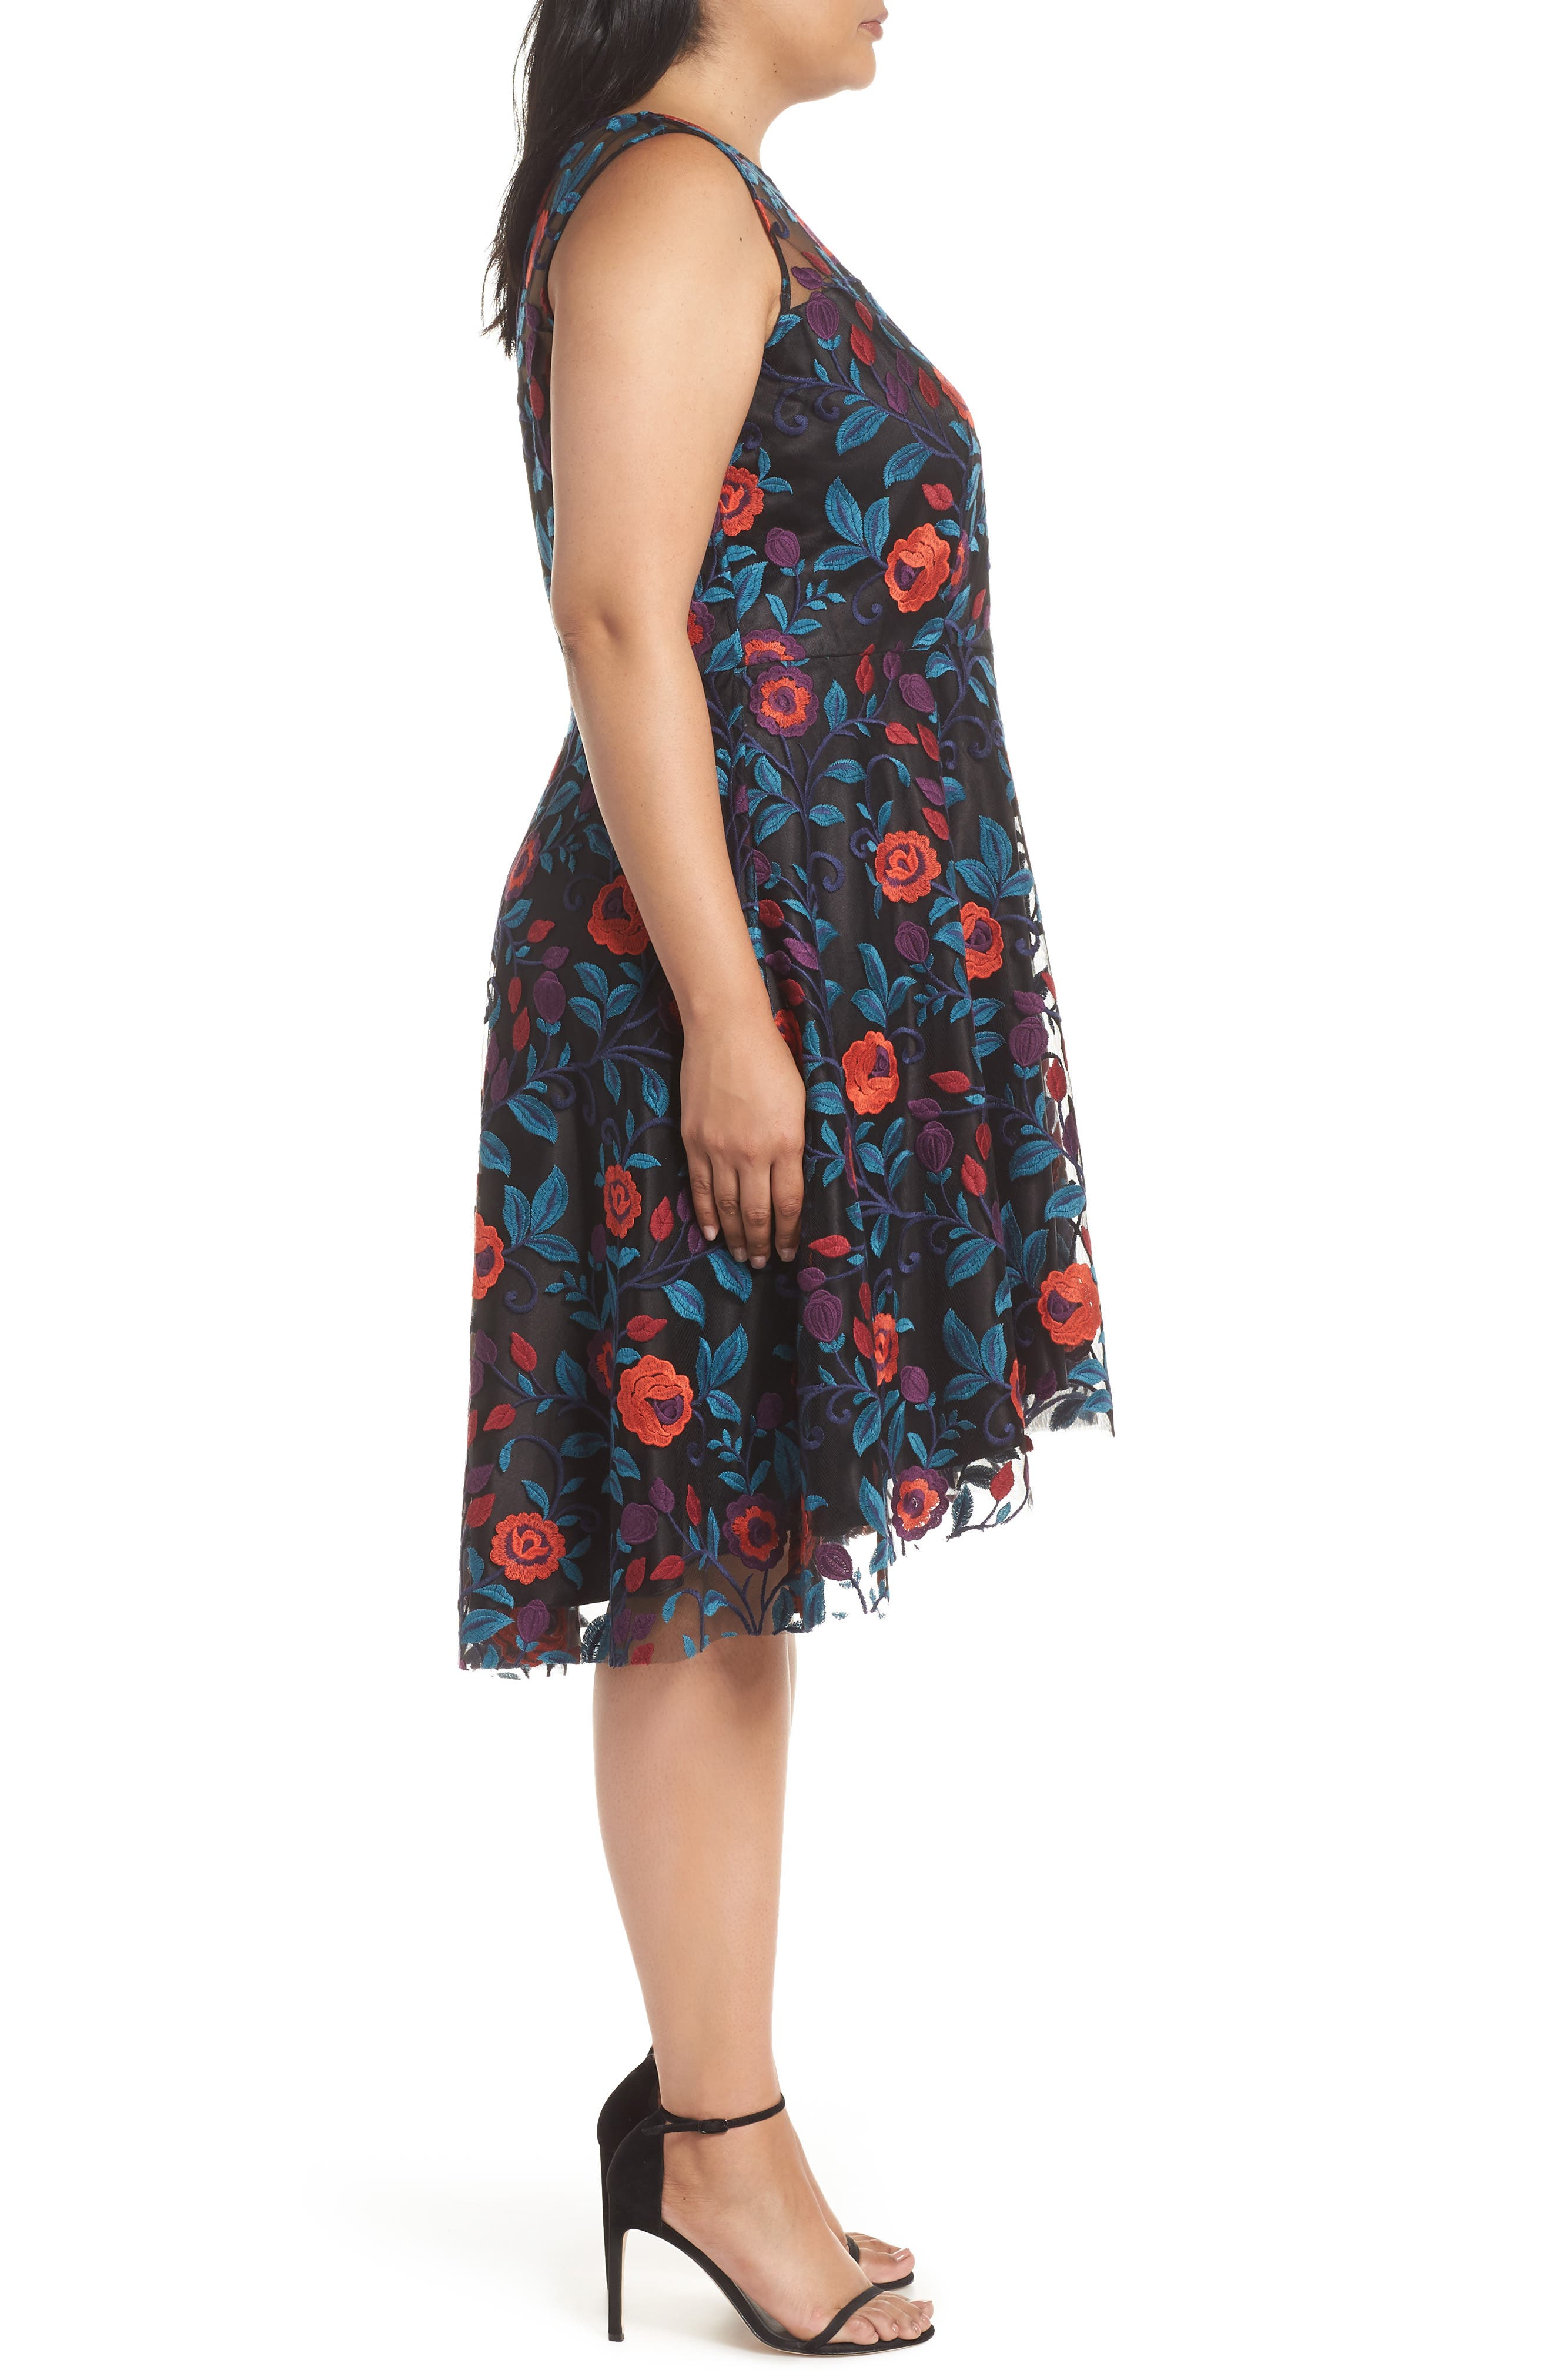 Floral Embroidery Fit and Flare Dress,                             Alternate thumbnail 3, color,                             BLACK/ TEAL/ RED